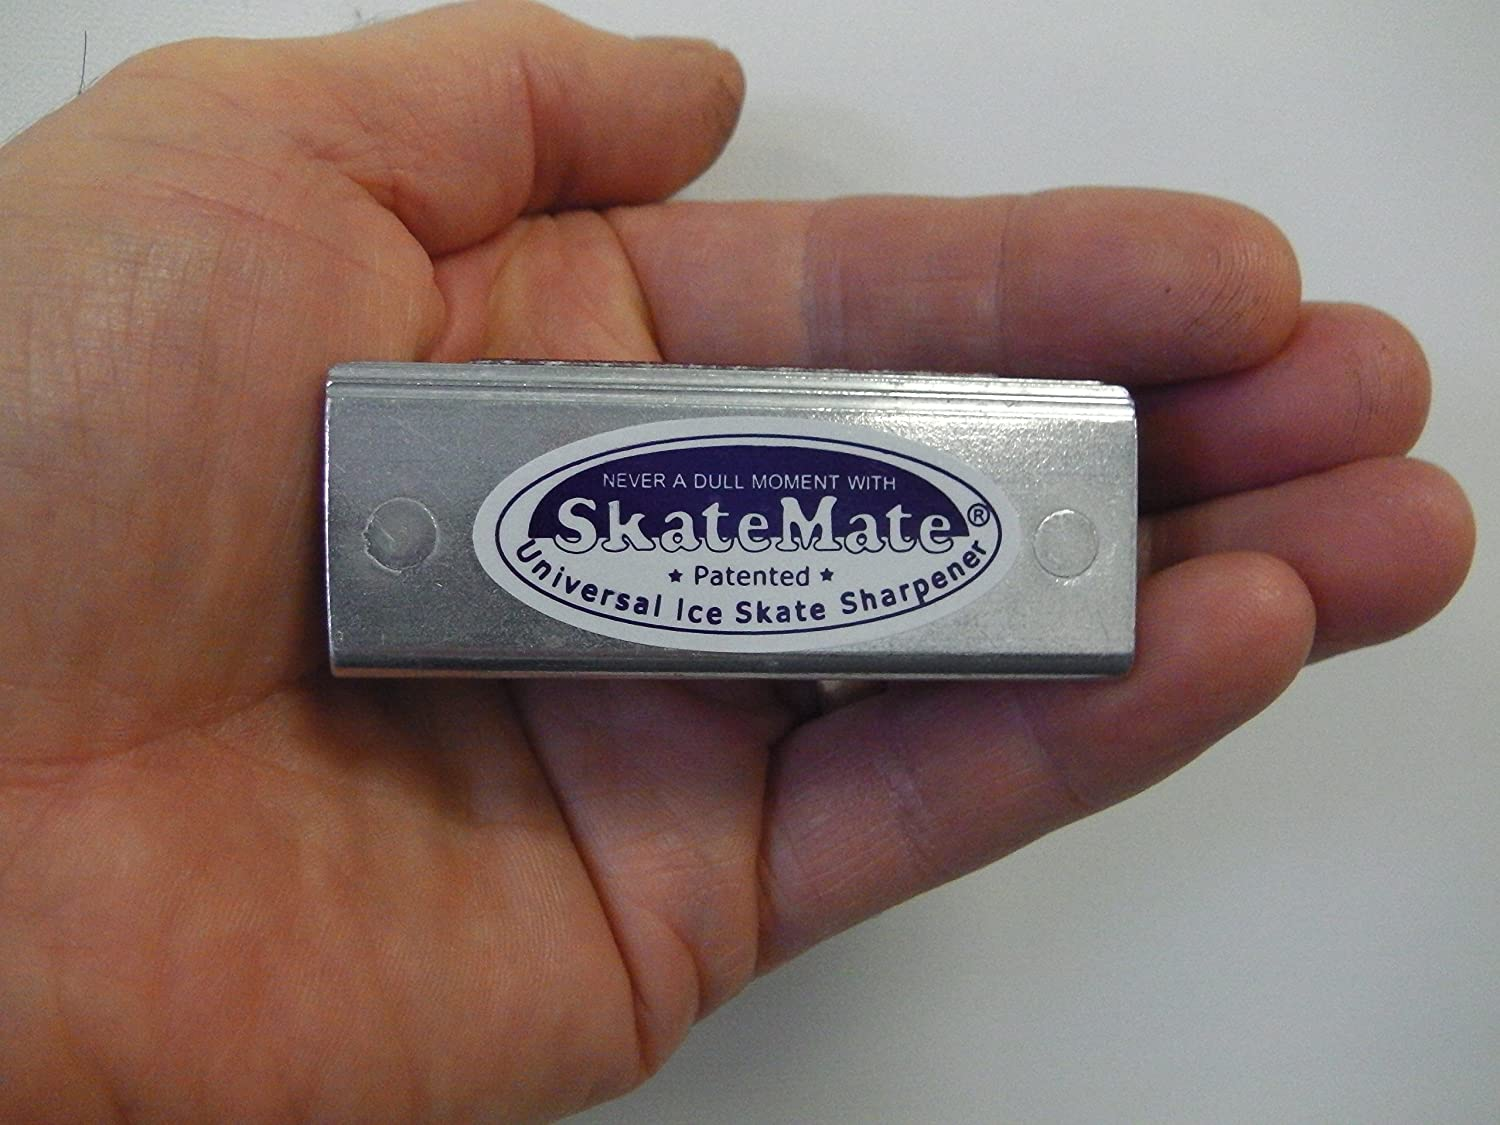 SkateMate patented handheld Ice Skate Sharpener / Conditioner for ALL ice skates, Ice Hockey, Speed skates or Dance! by Skatemate : Sports & Outdoors